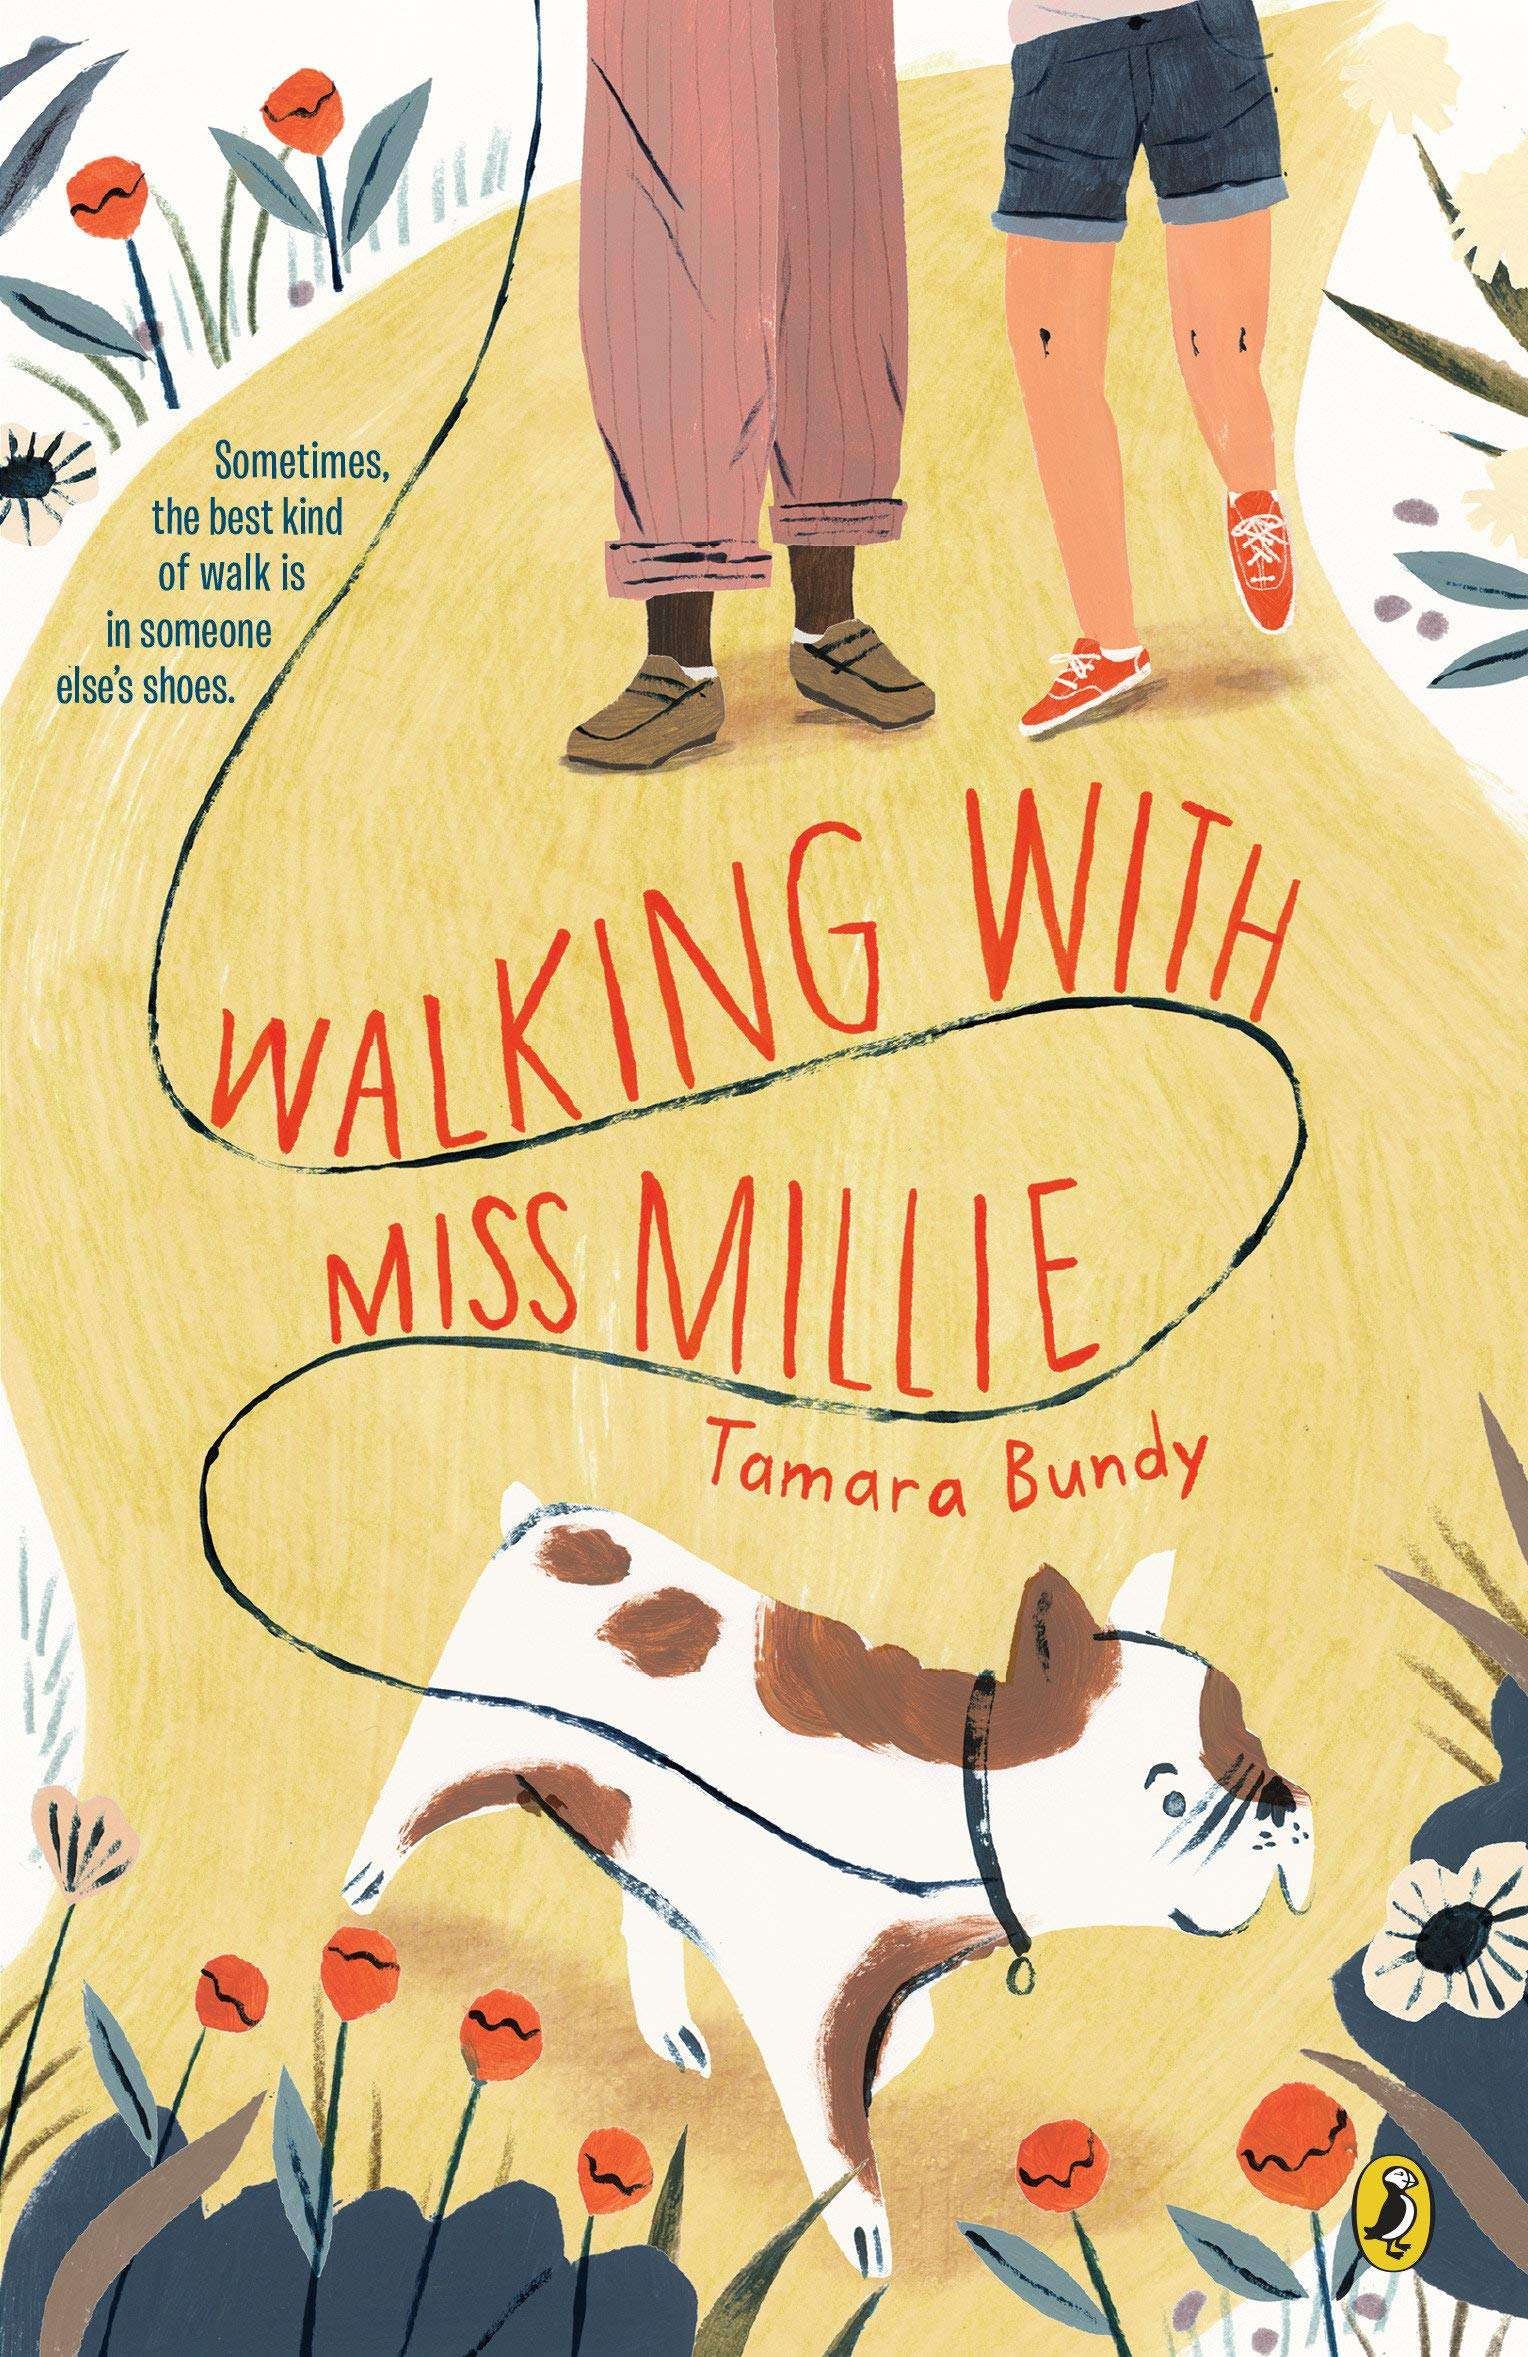 Image result for walking with miss millie book cover